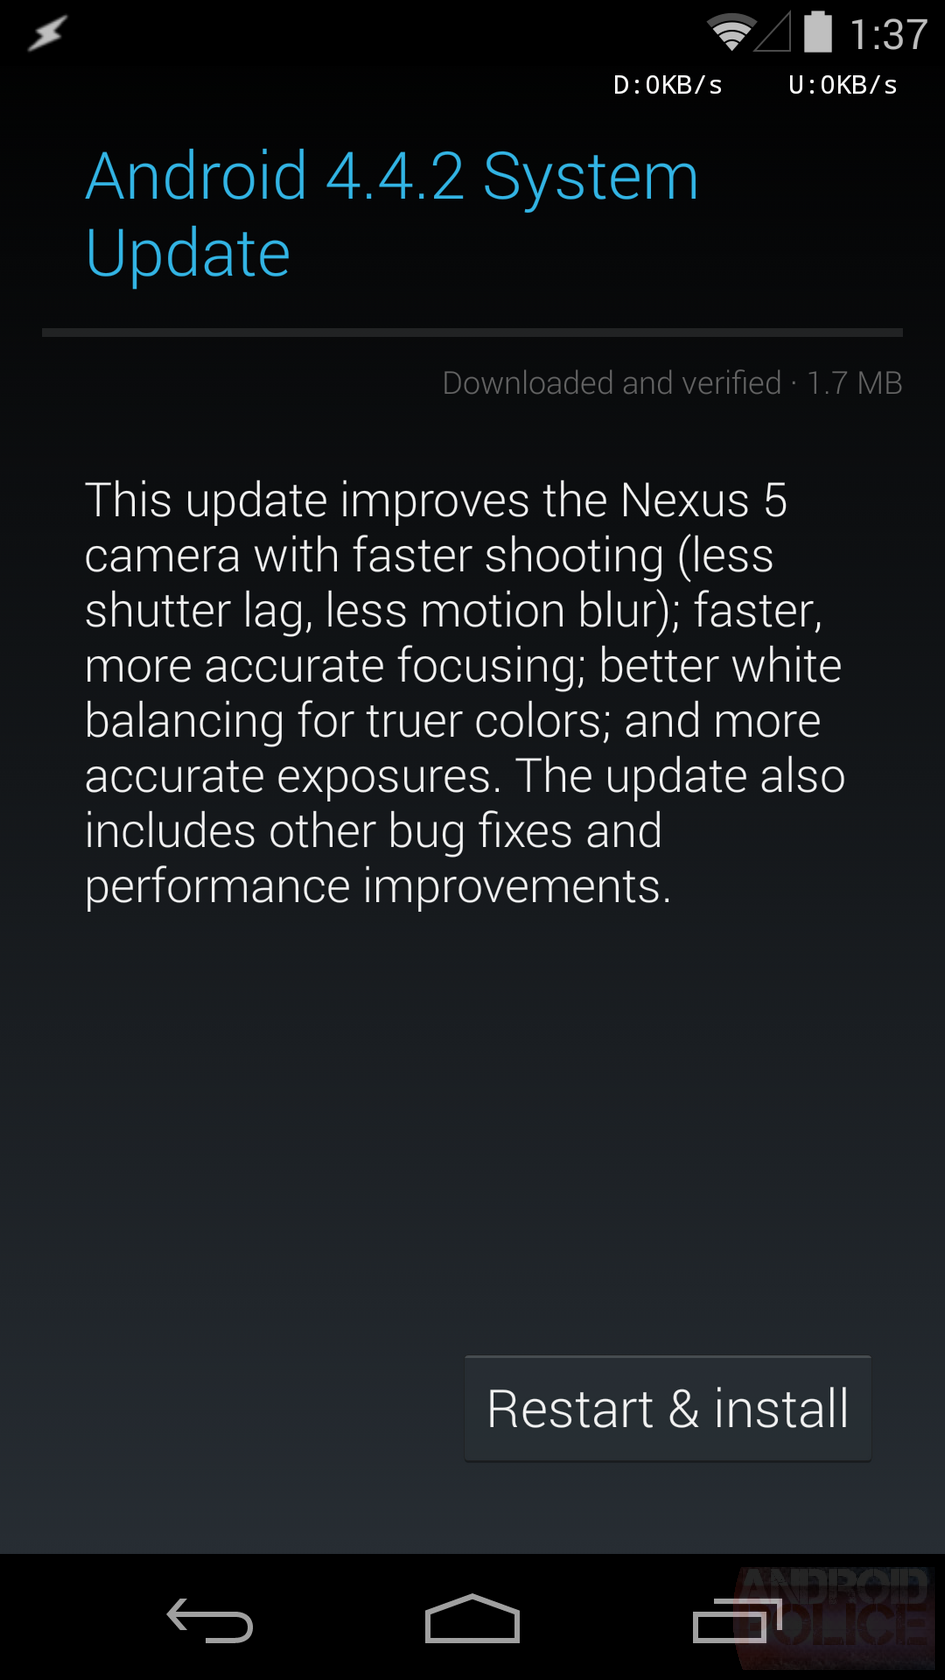 Android 4.4.2 (KOT49H) Is Already Rolling Out To All Nexus Devices - Here Are The OTA ZIP Links For Manual Updating